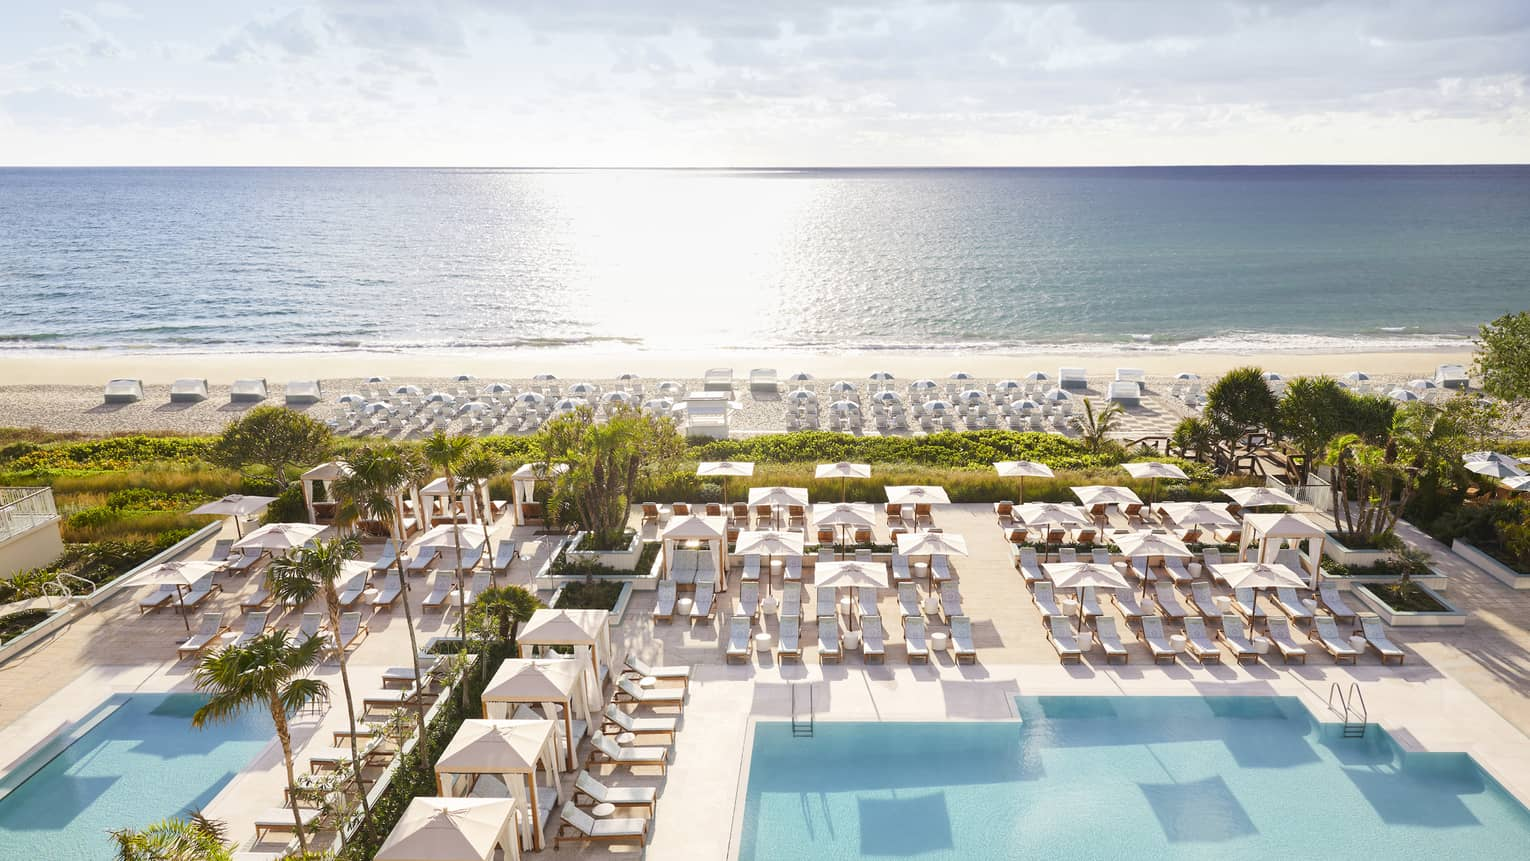 Aerial view of sprawling Four Seasons Resort Palm Beach pool, patio and beach by ocean